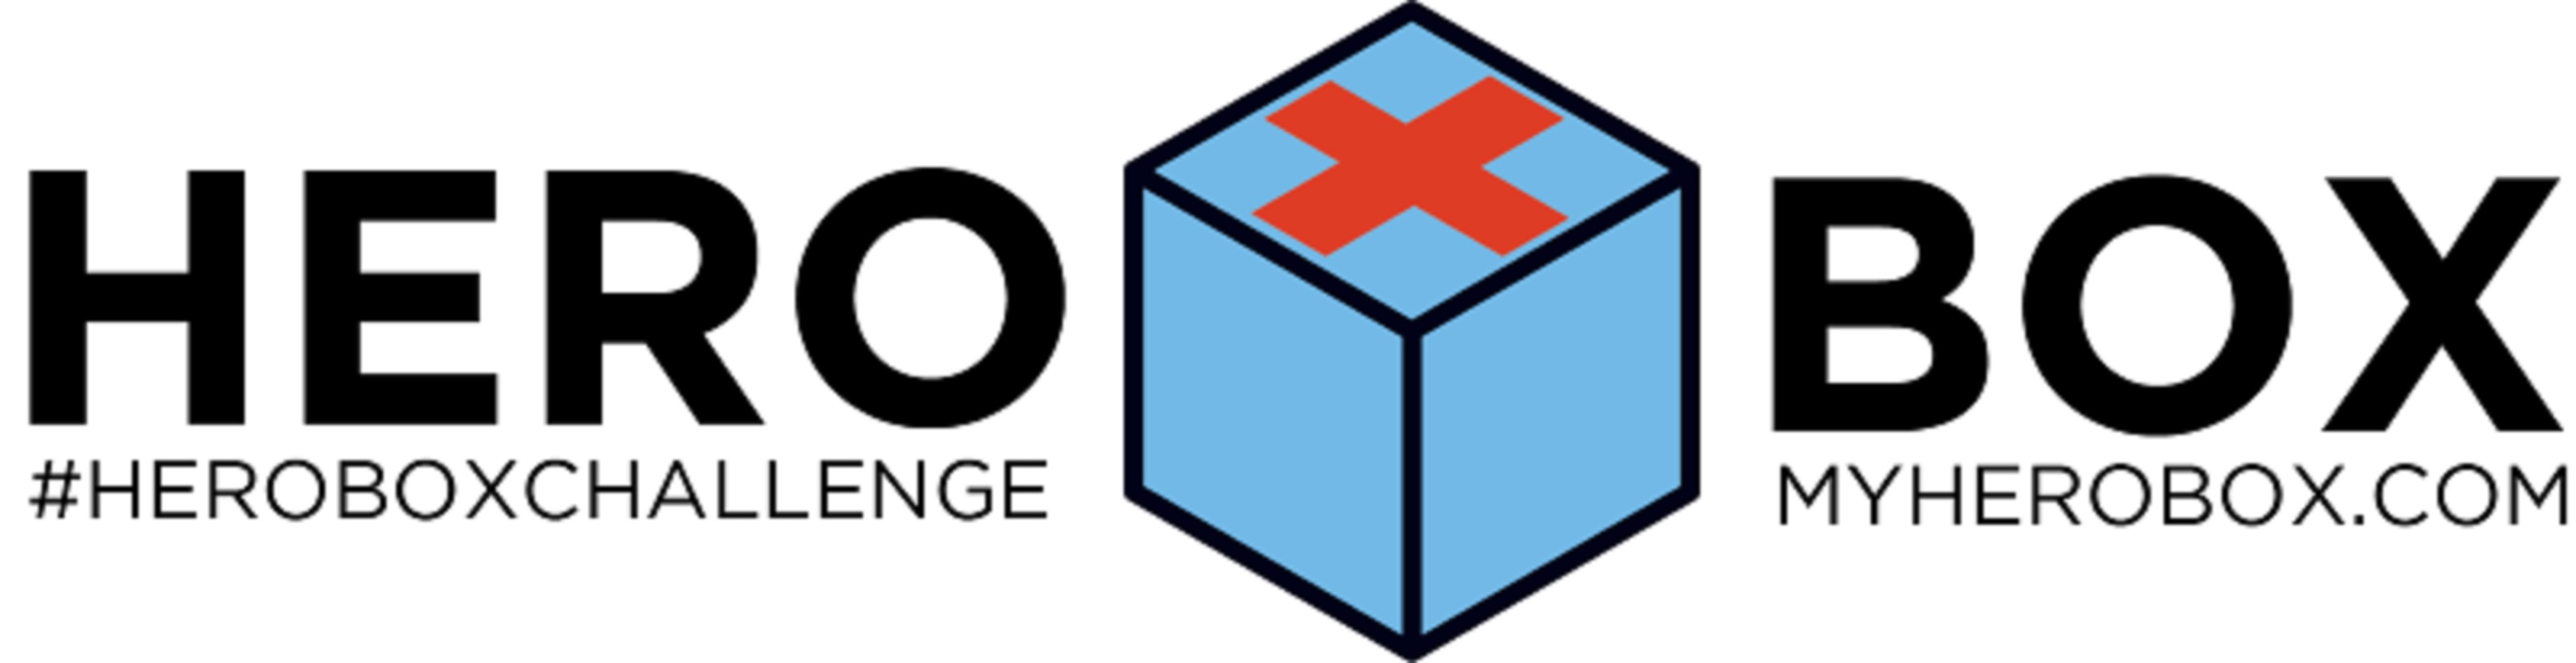 #HeroBoxChallenge Helps Healthcare Workers Acquire PPE During COVID-19 Crisis